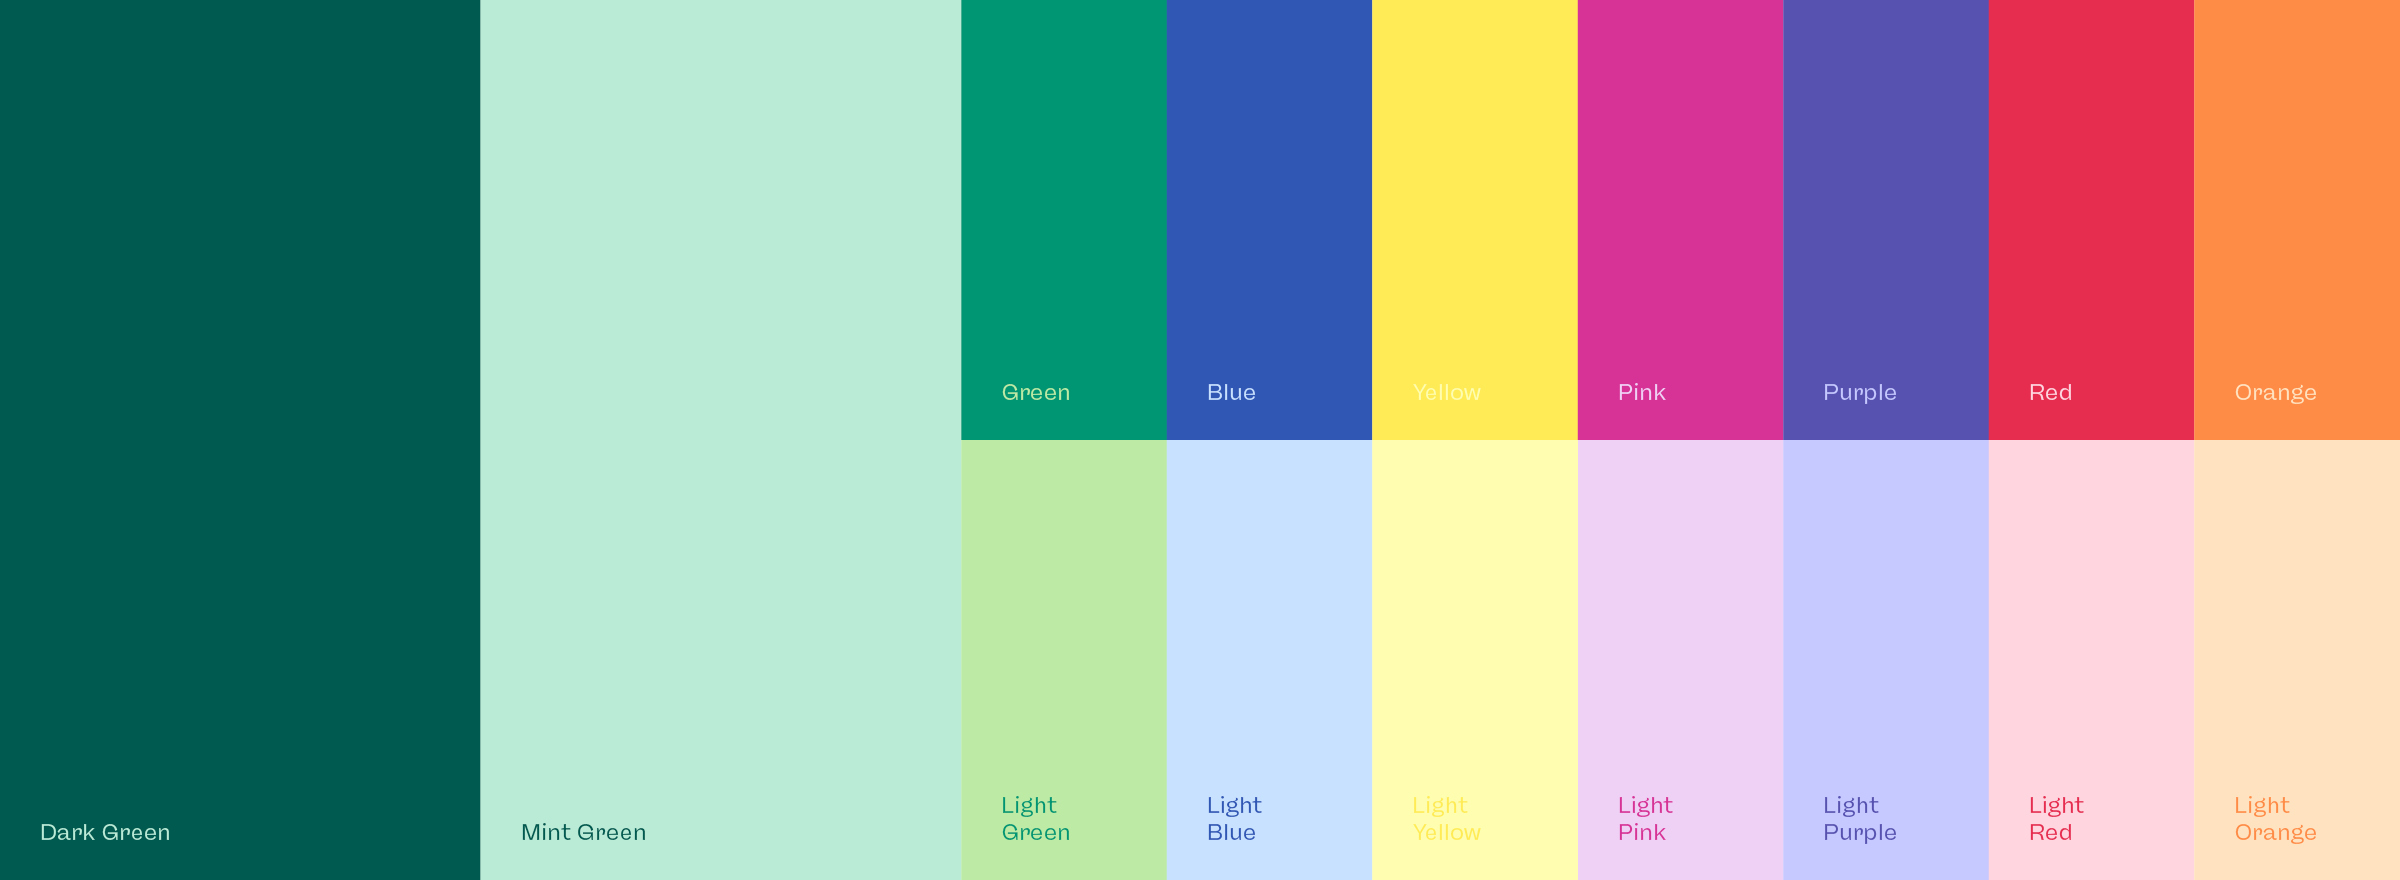 the colors belong to the new visual identity